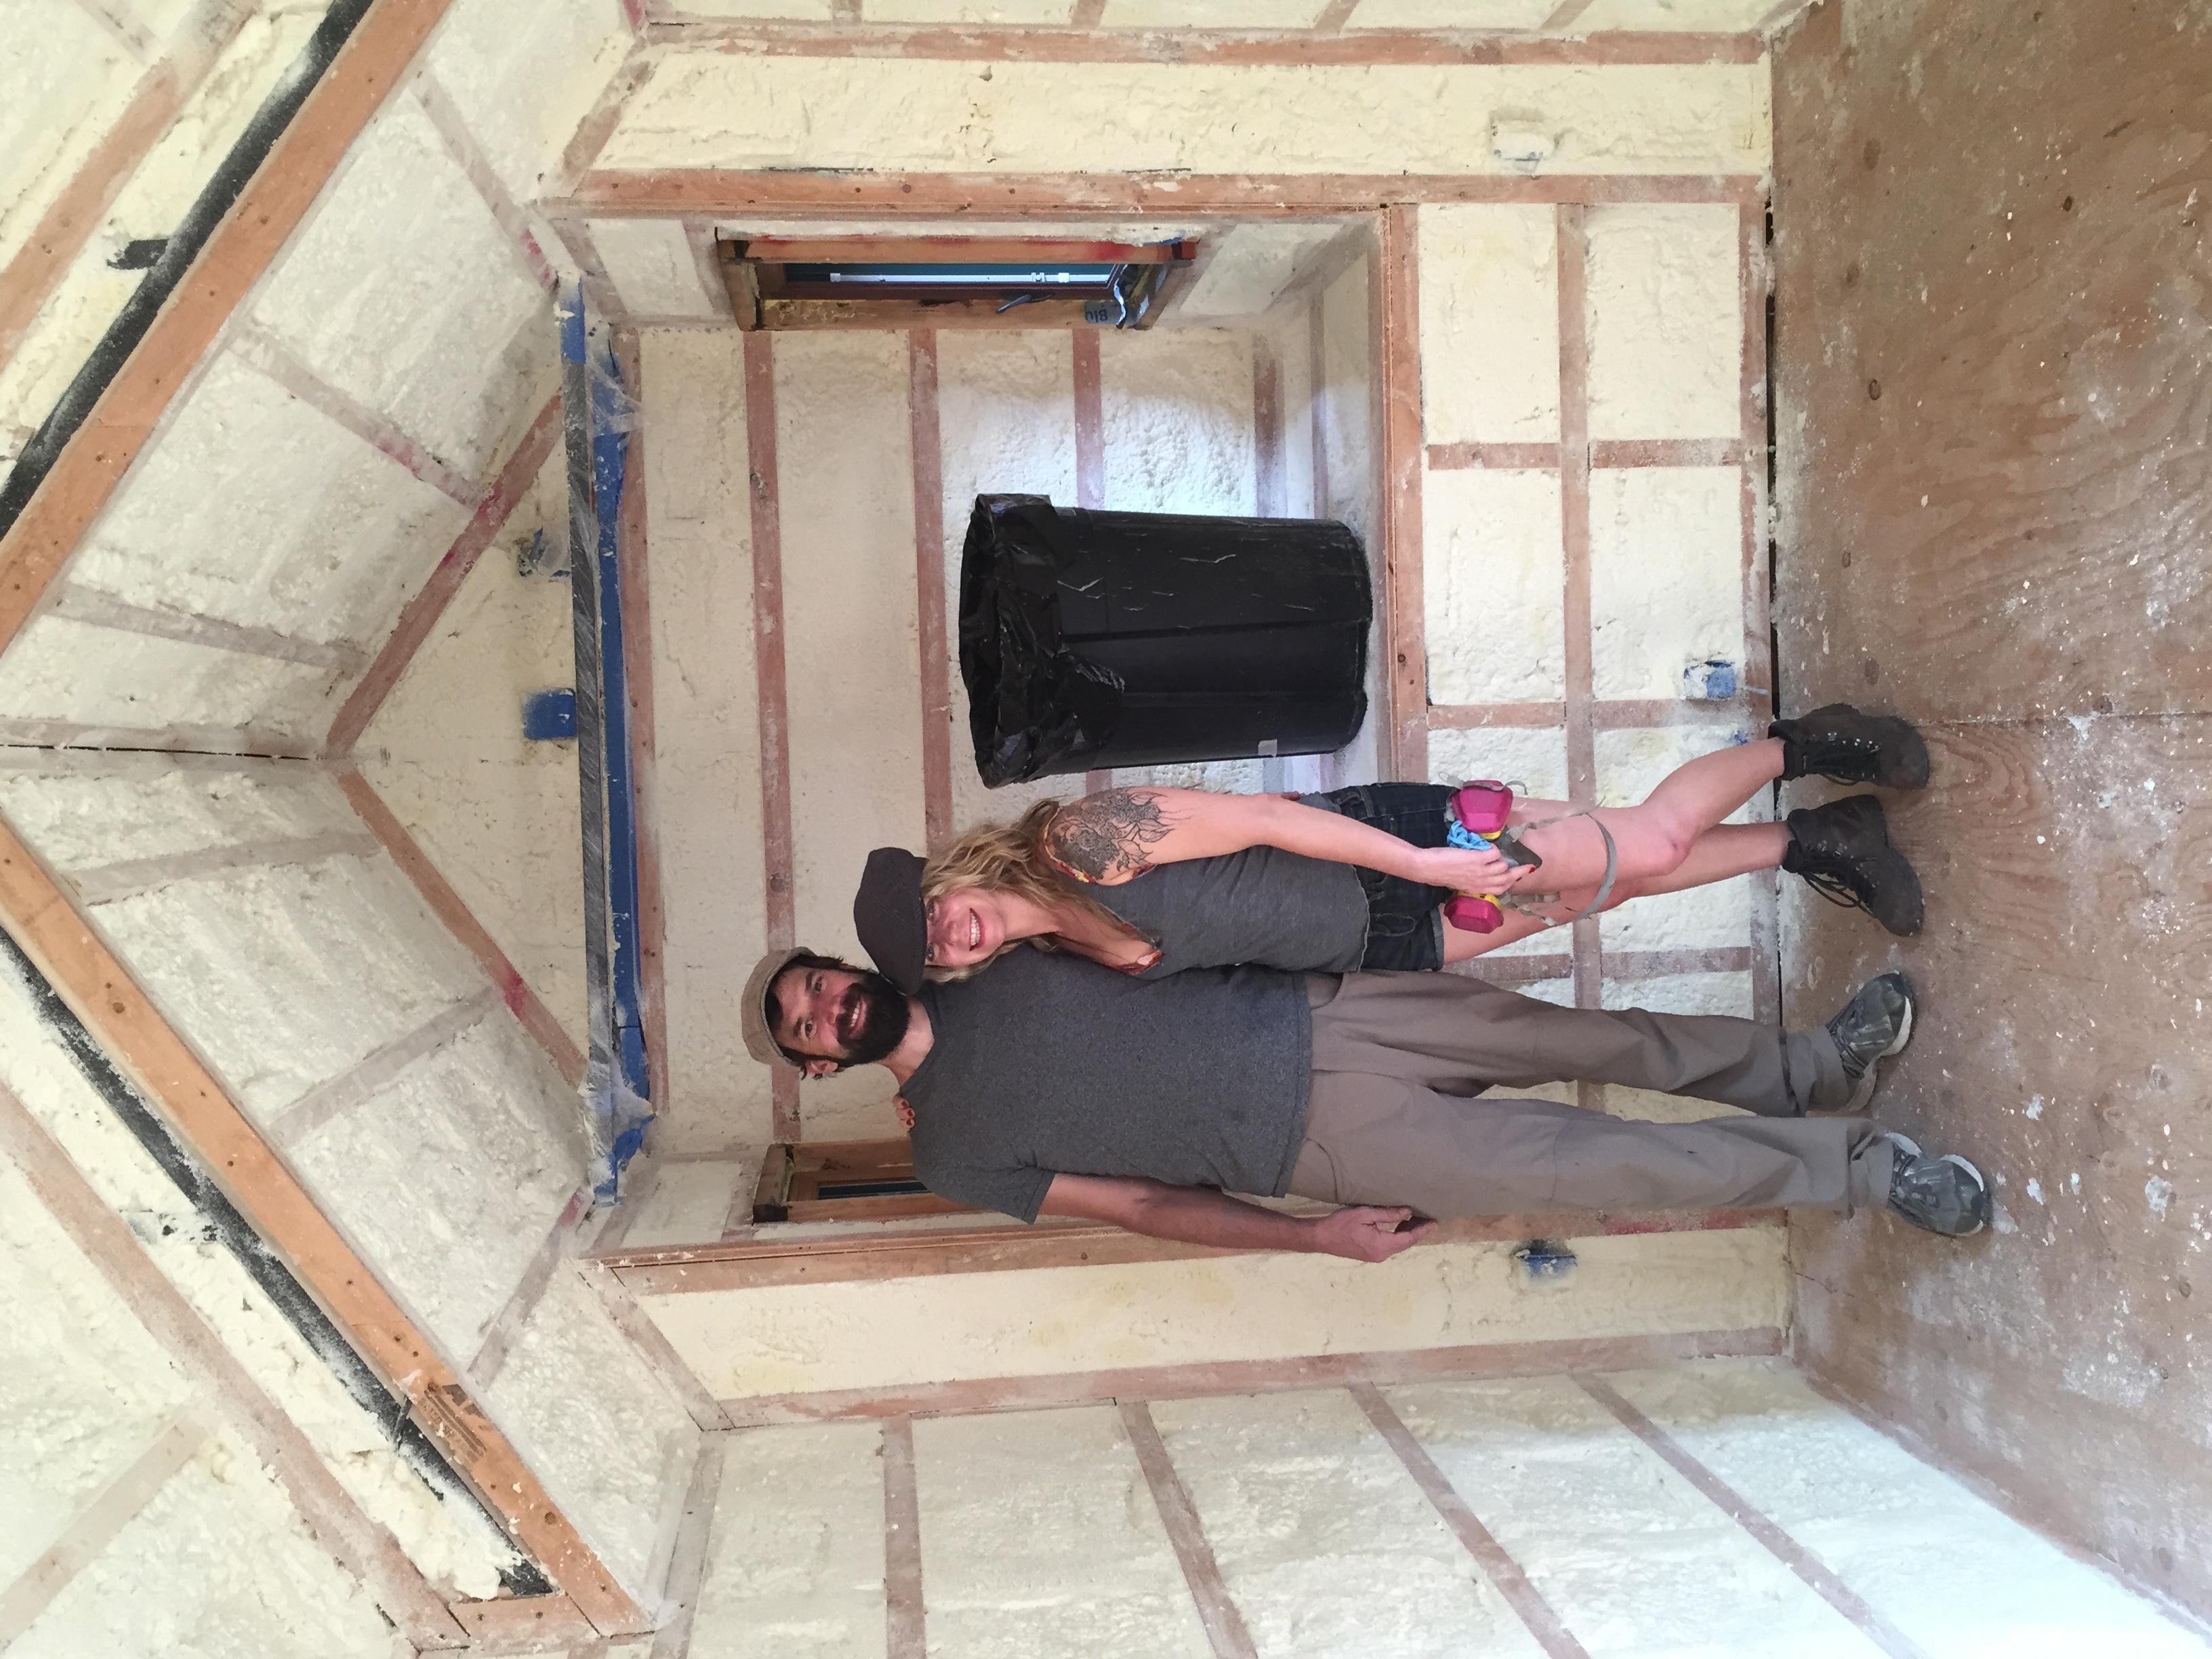 How Much Does Spray Foam Insulation Cost?